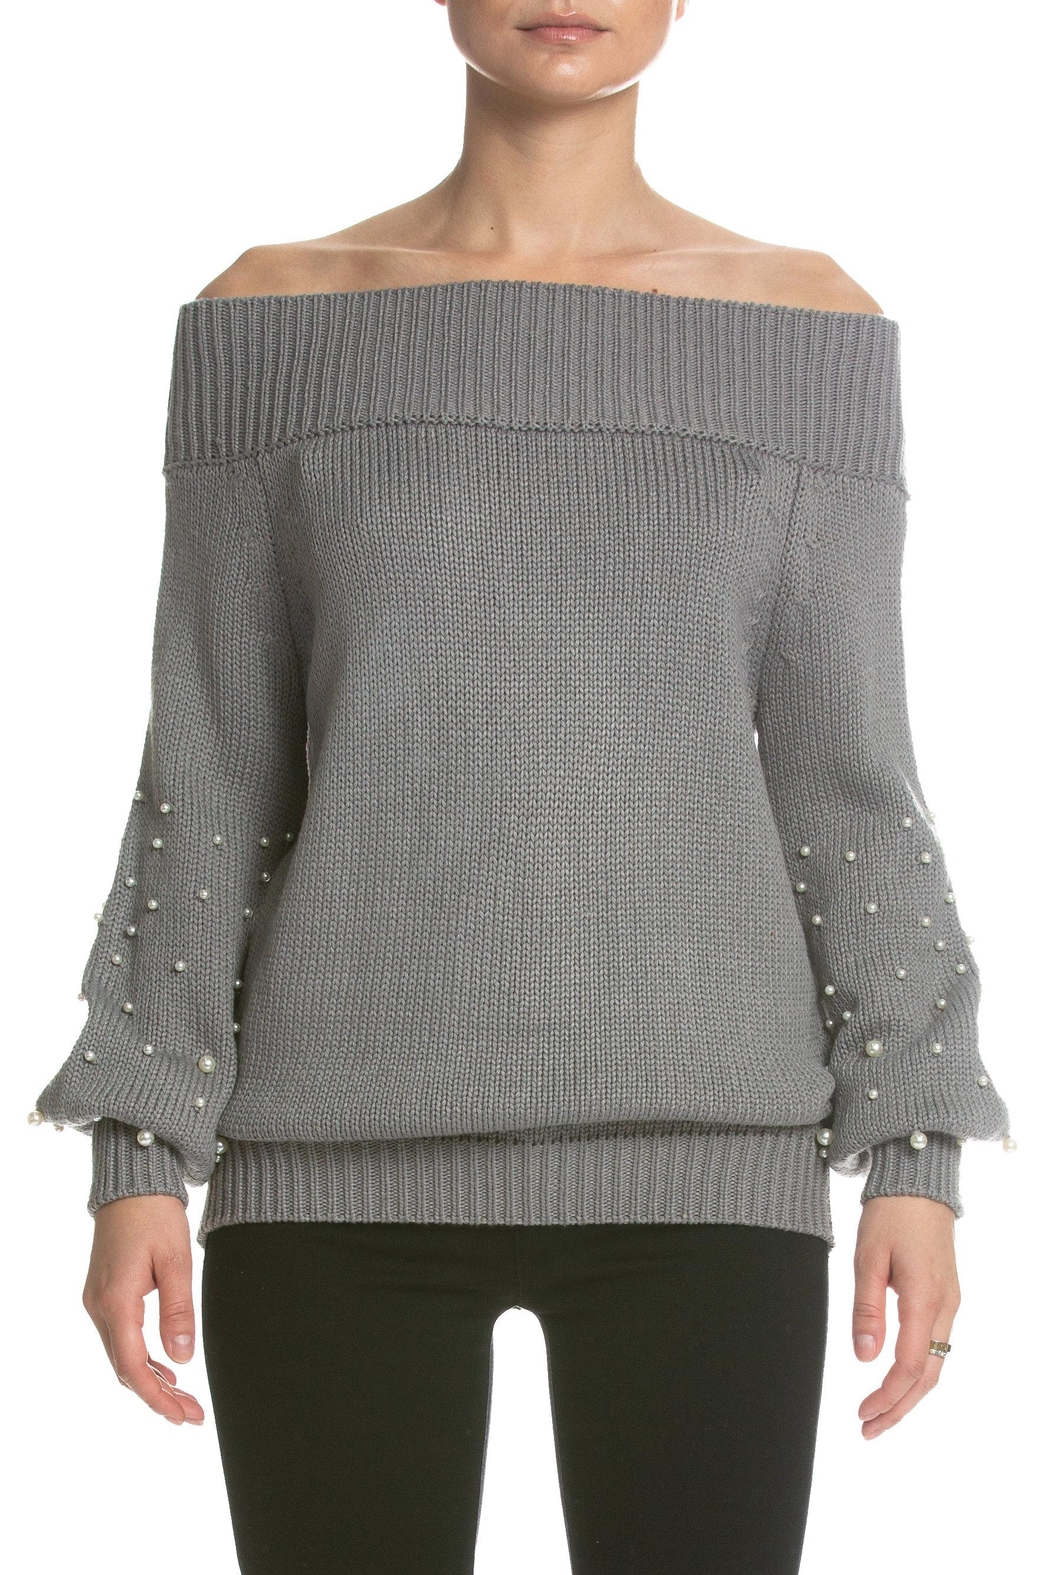 Elan Pearl Studded Sweater - Main Image